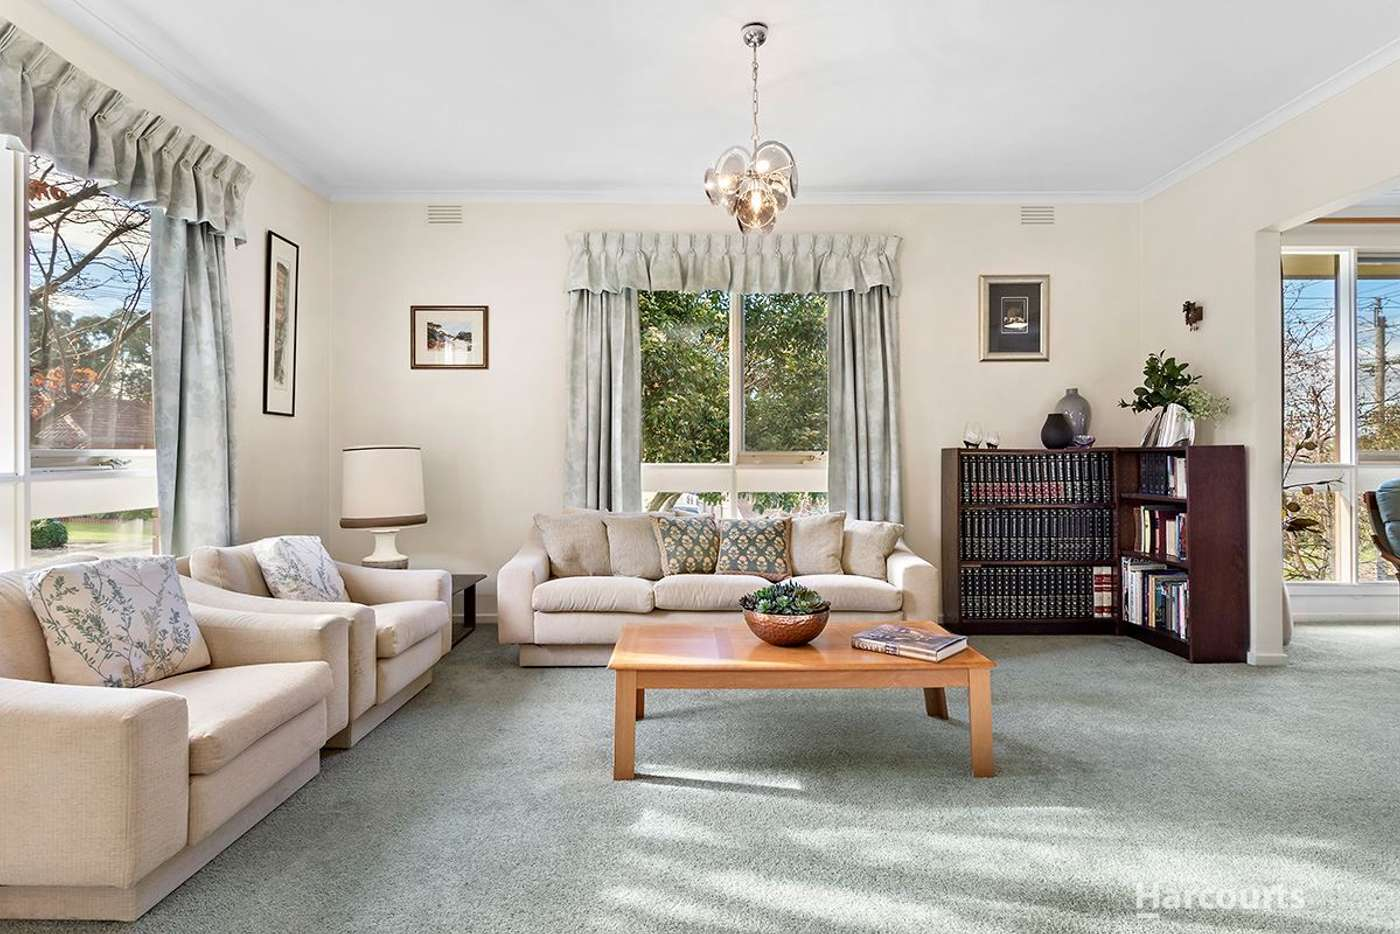 Sixth view of Homely house listing, 50 Sandgate Avenue, Glen Waverley VIC 3150